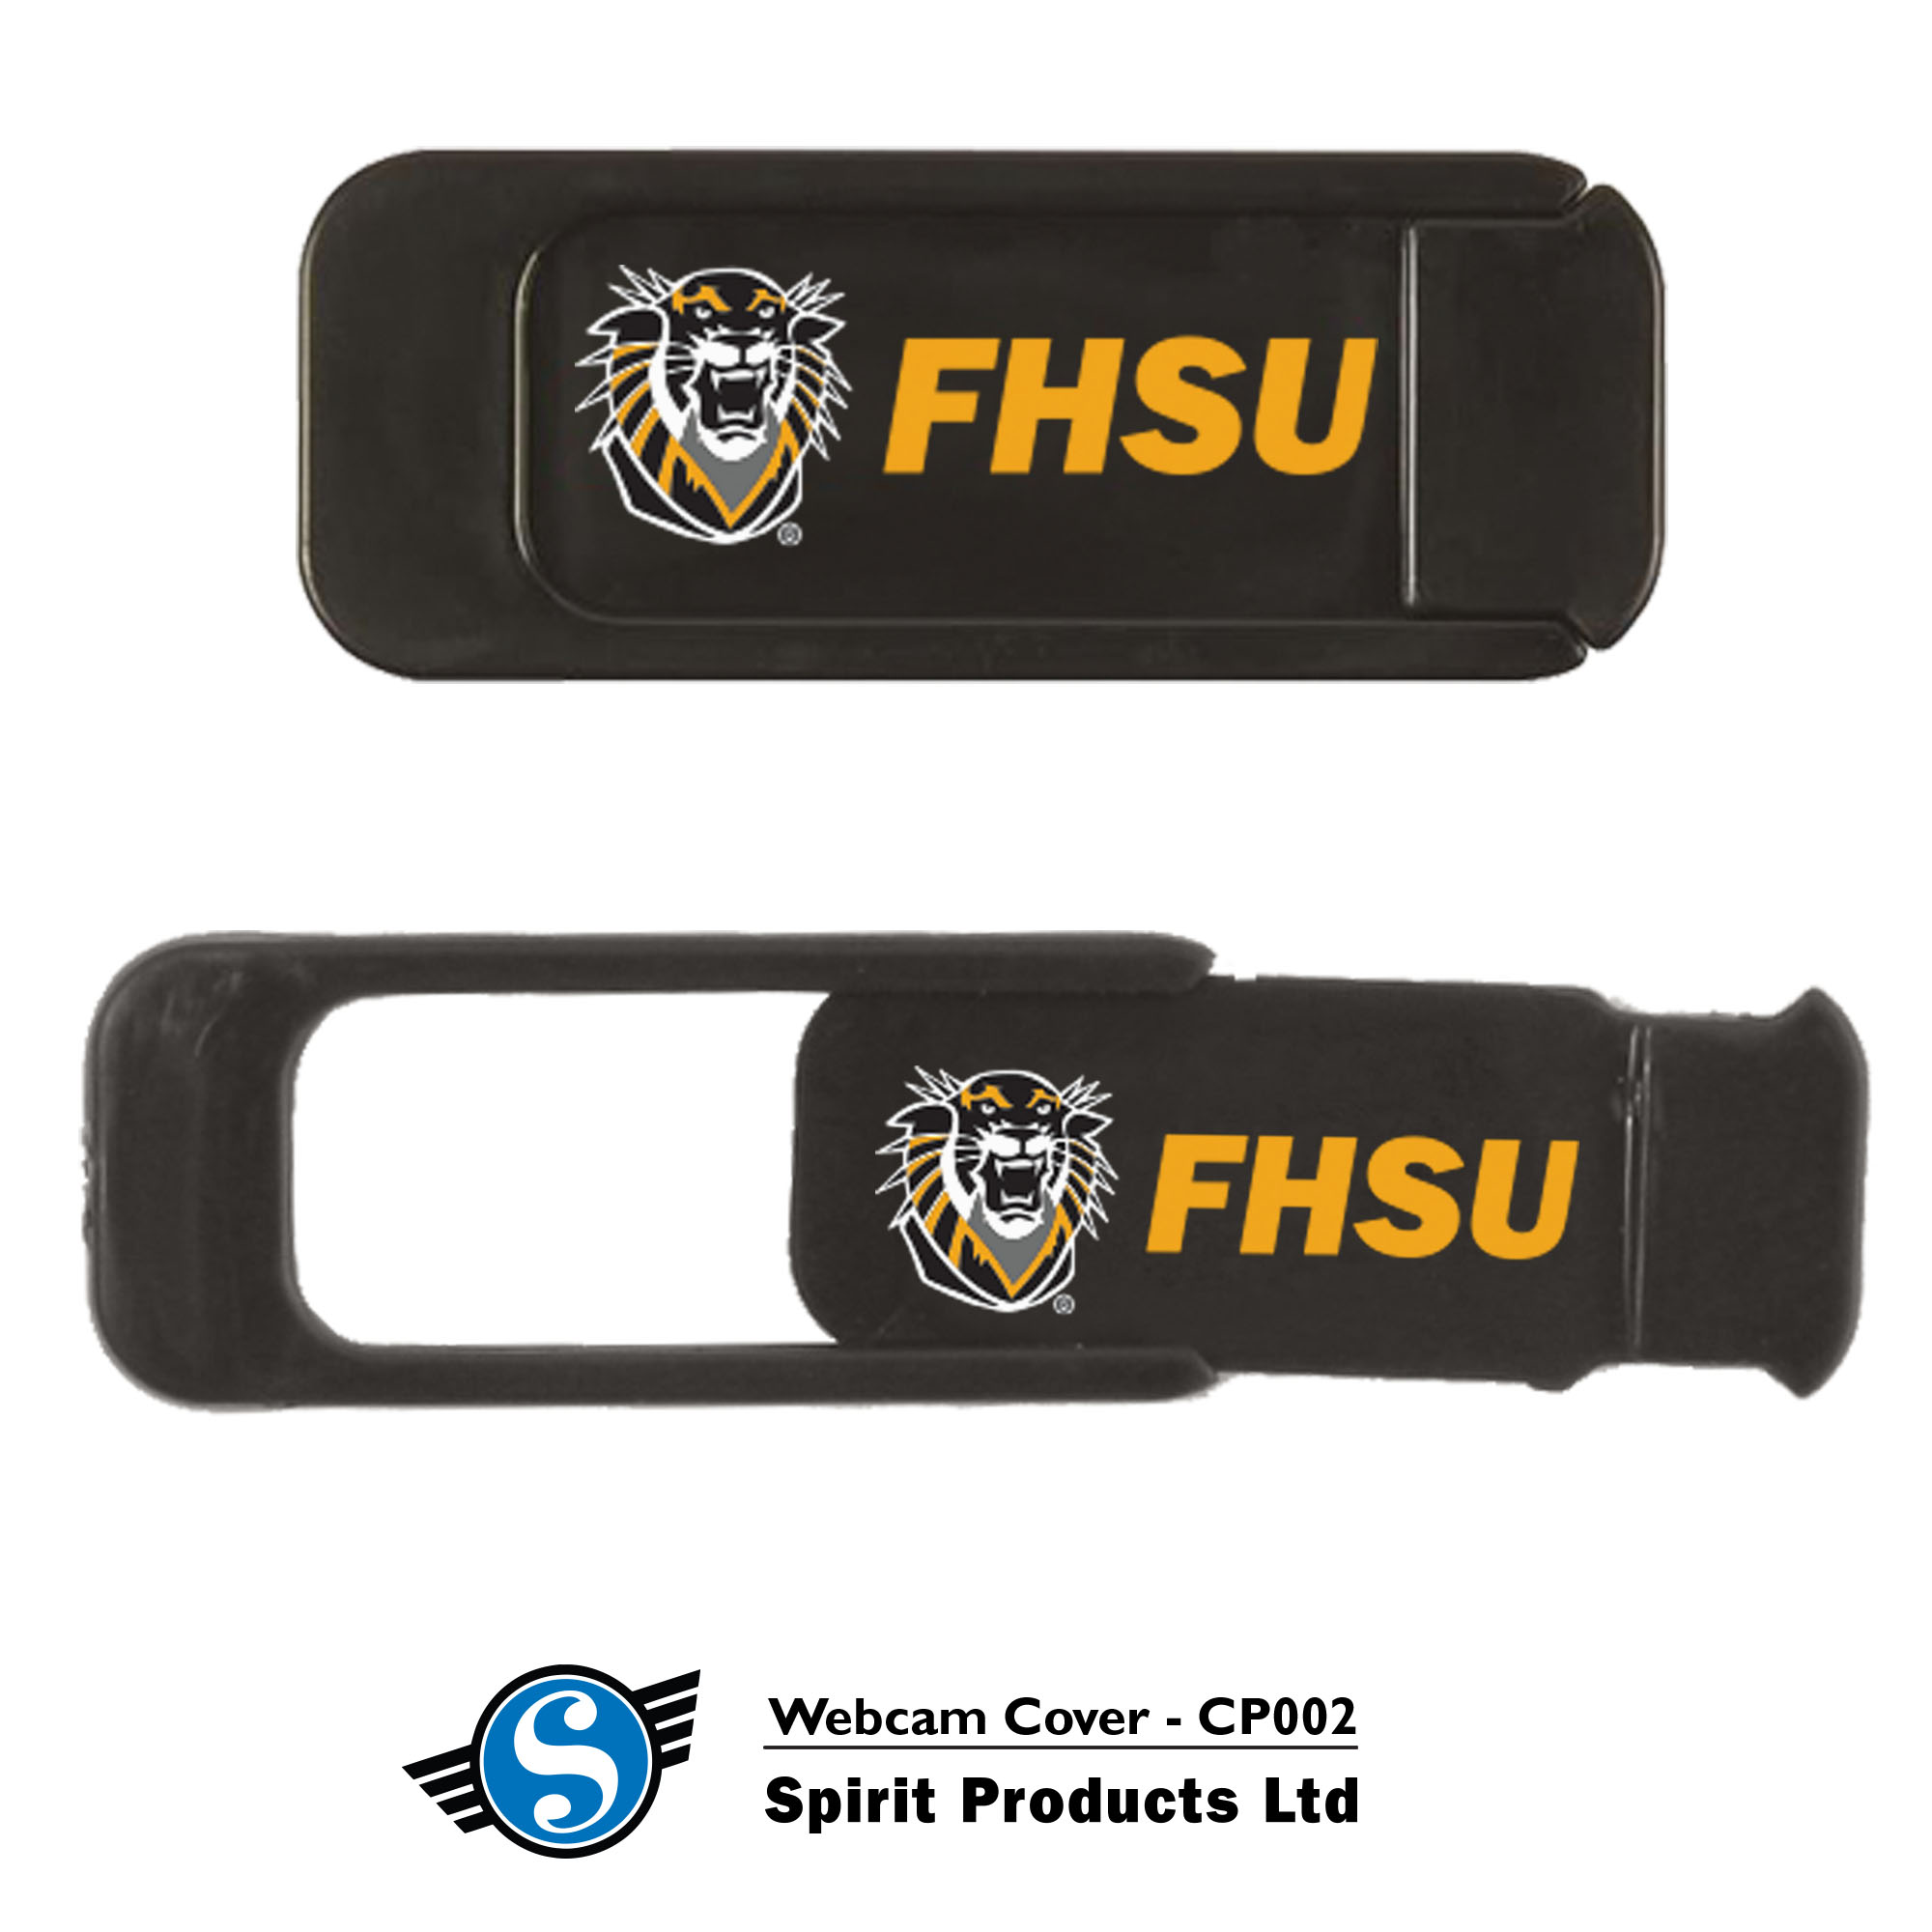 Image for the FHSU Webcam Cover, Spirit Products product